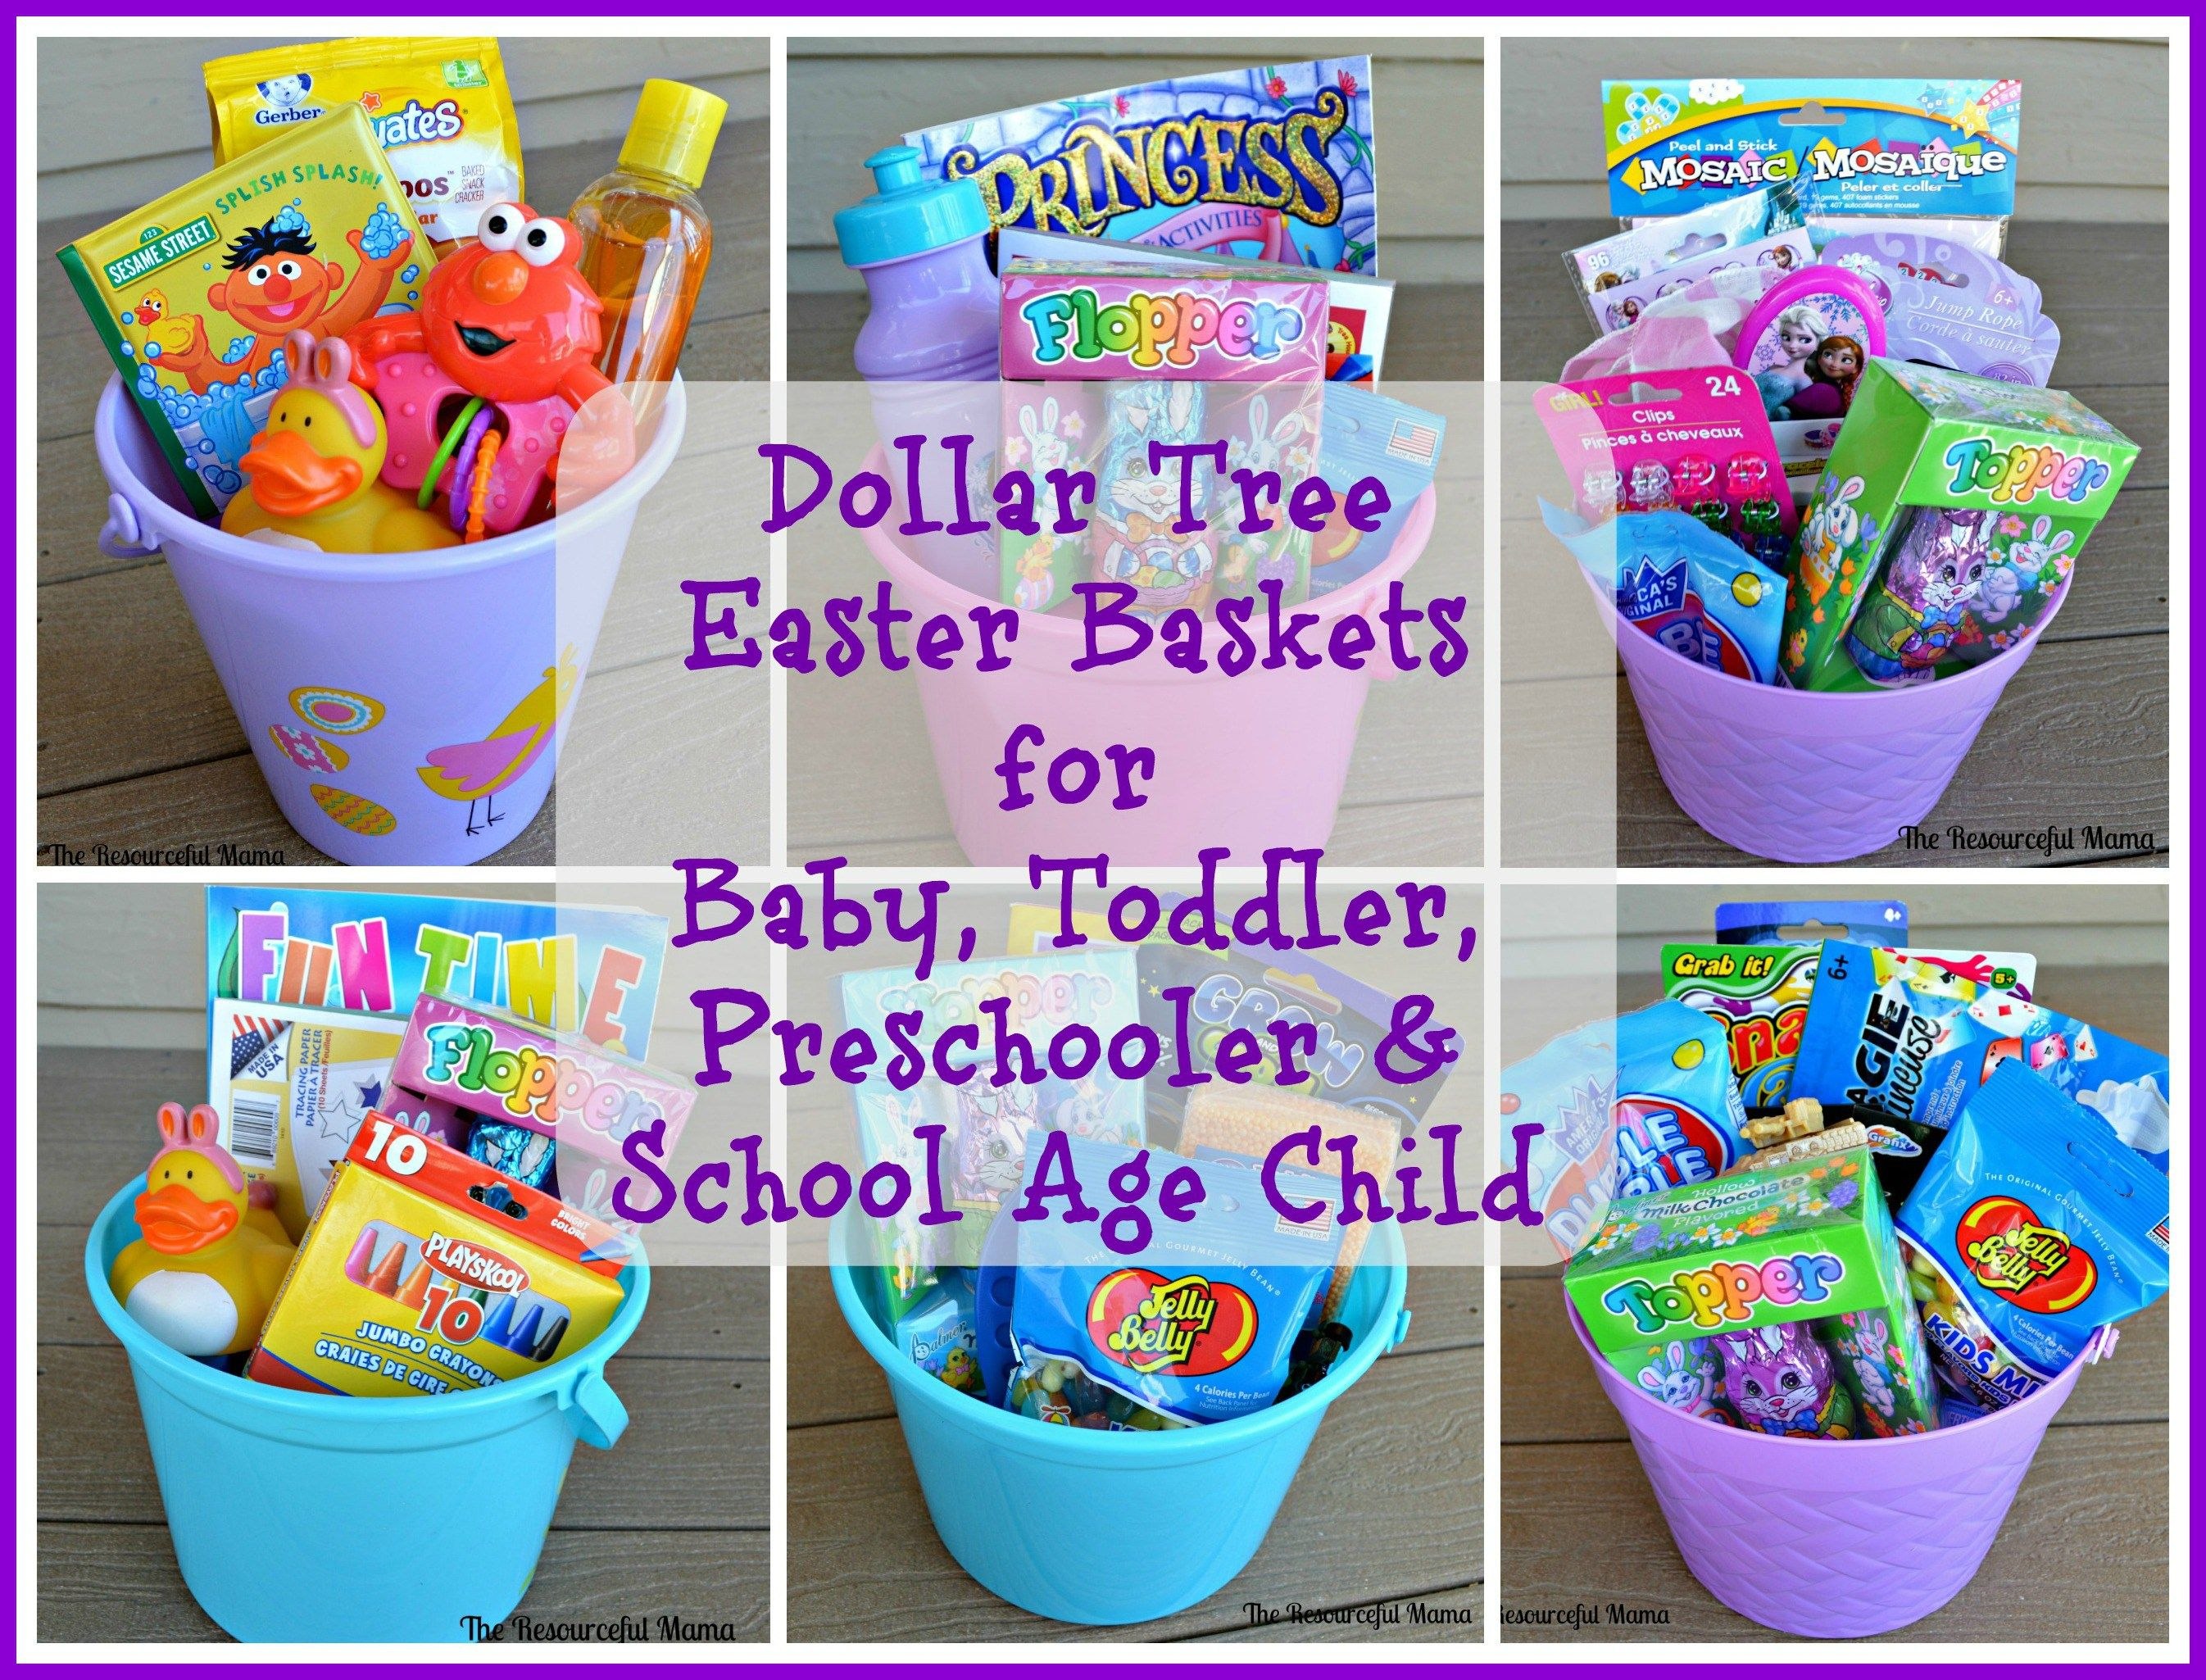 Dollar tree easter baskets the resourceful mama baby